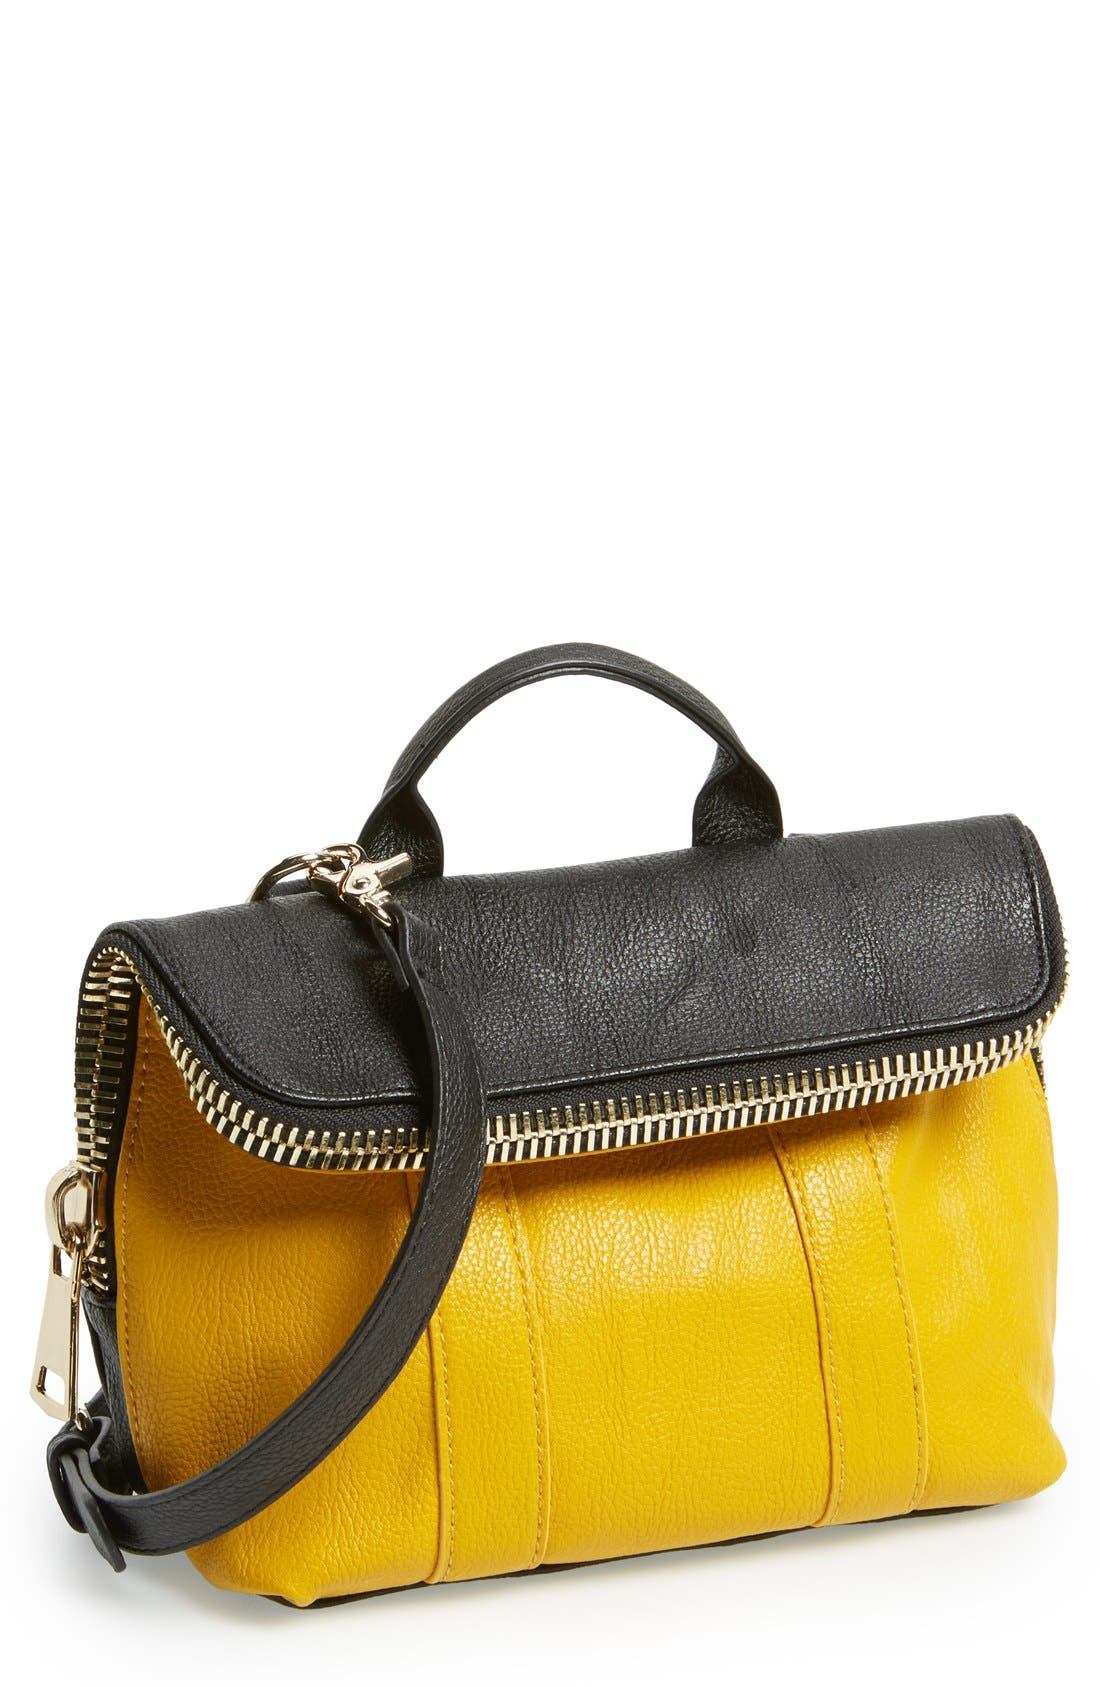 Alternate Image 1 Selected - POVERTY FLATS by rian 'Super' Zip Top Foldover Crossbody Bag